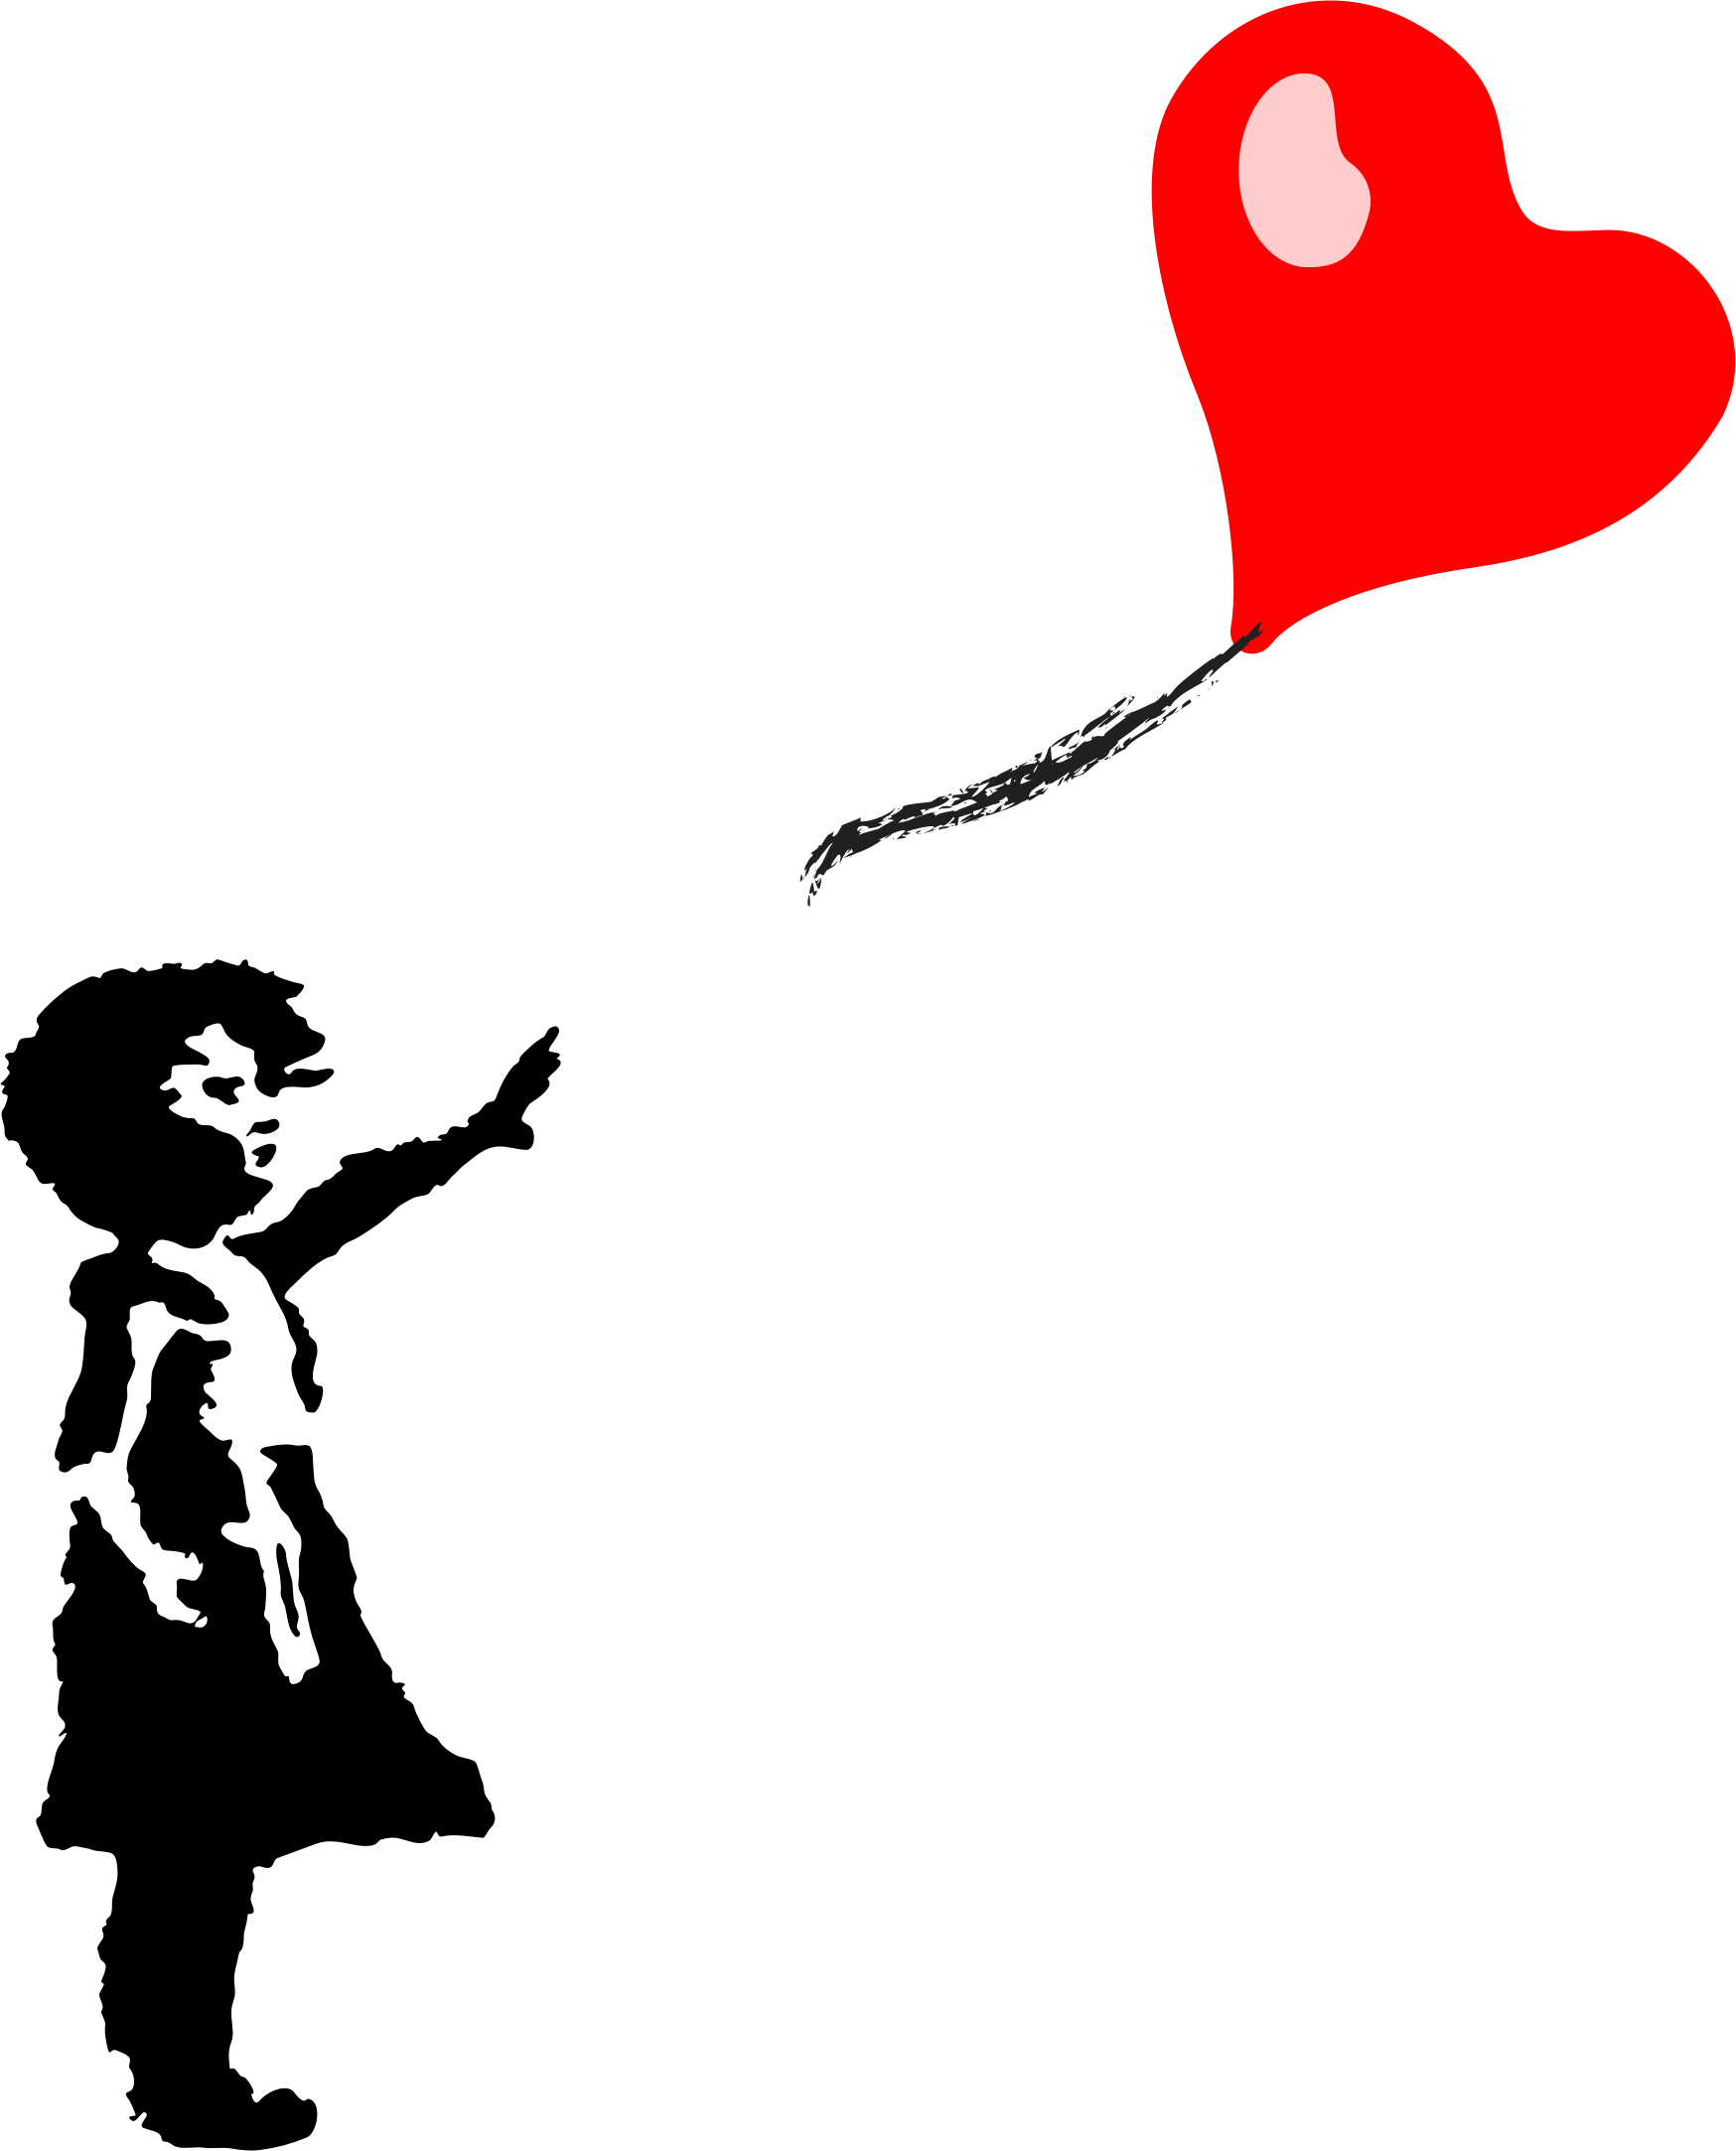 Little girl and heart. Clipart balloon silhouette